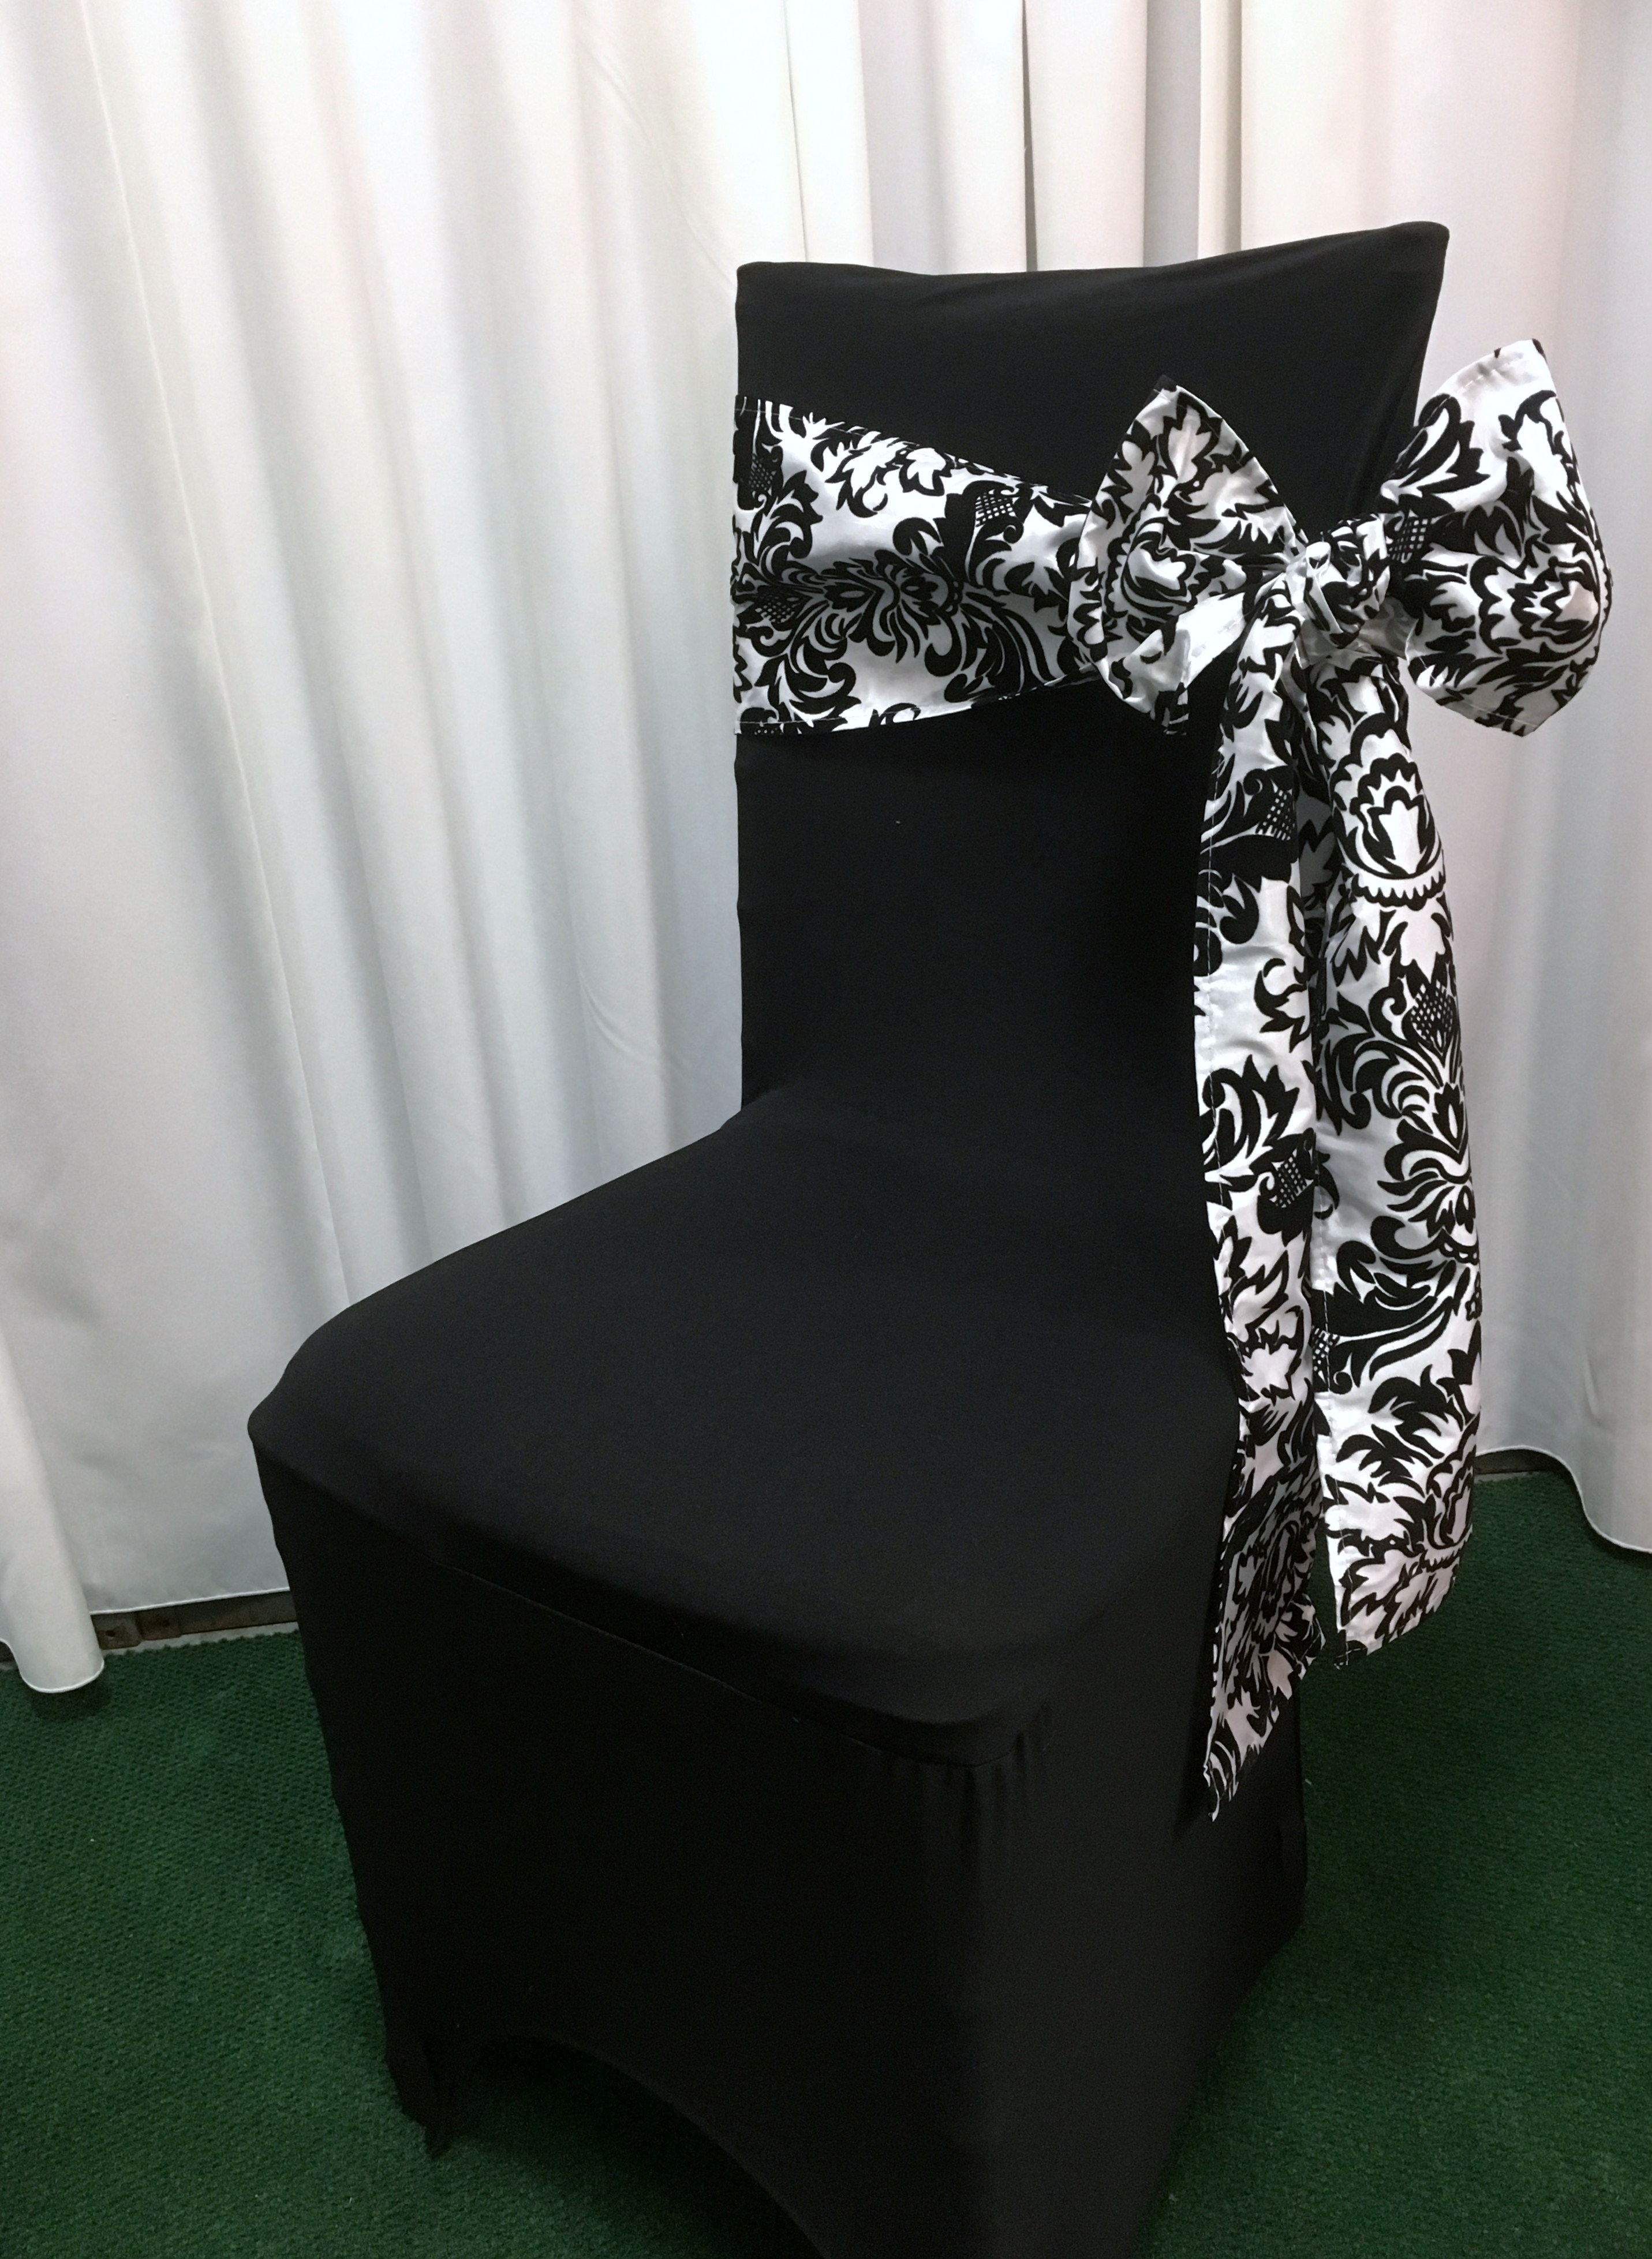 chair covers rental near me antique rocking styles party linens llc chicago illinois il localdatabase